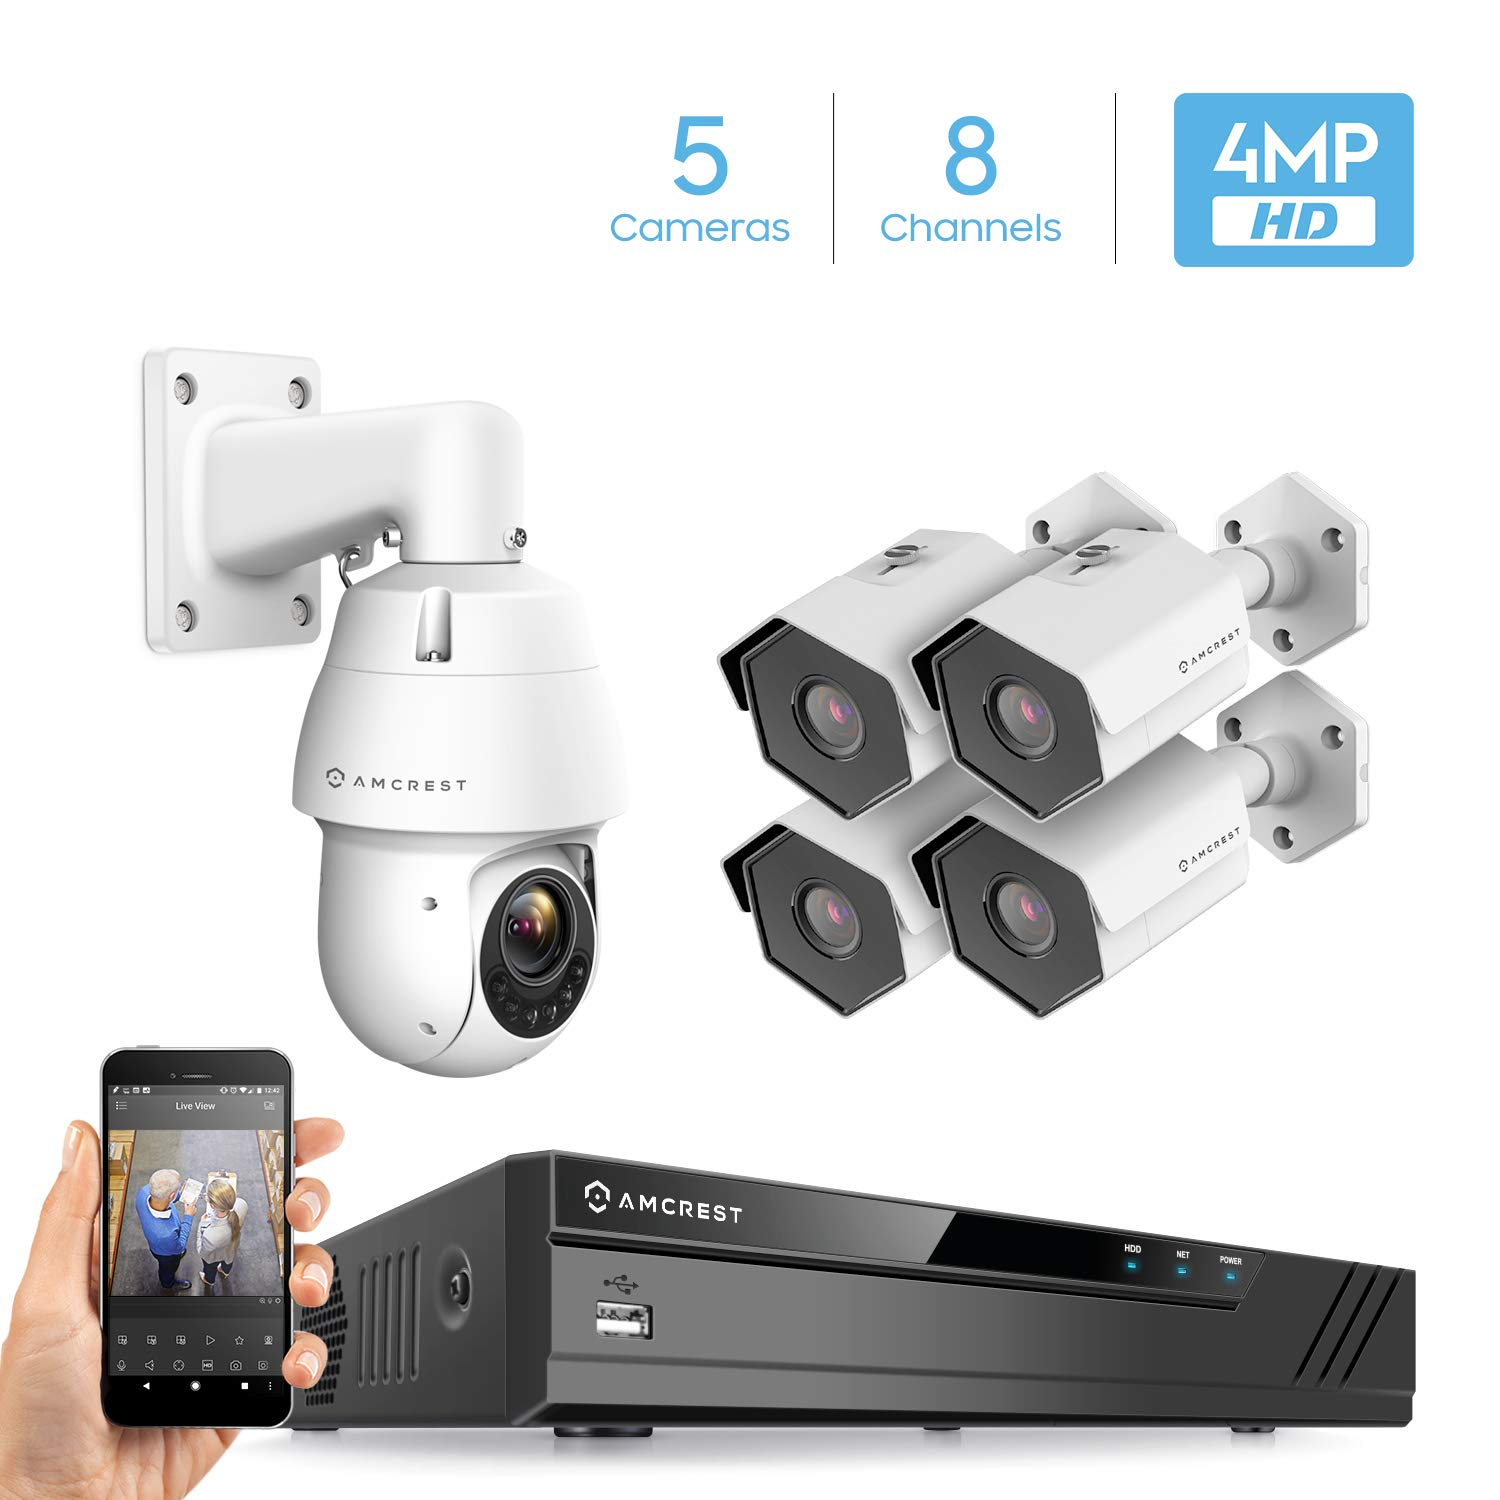 Amcrest 4MP Security Camera System, w 4K 8CH PoE NVR, 4 x 4MP IP67 Weatherproof Bullet POE IP Cameras, 1 X 4MP Speed Dome Camera, HDD Not Included, NV4108E-IP4M-1053EW1-IP4M-1026EW4 White